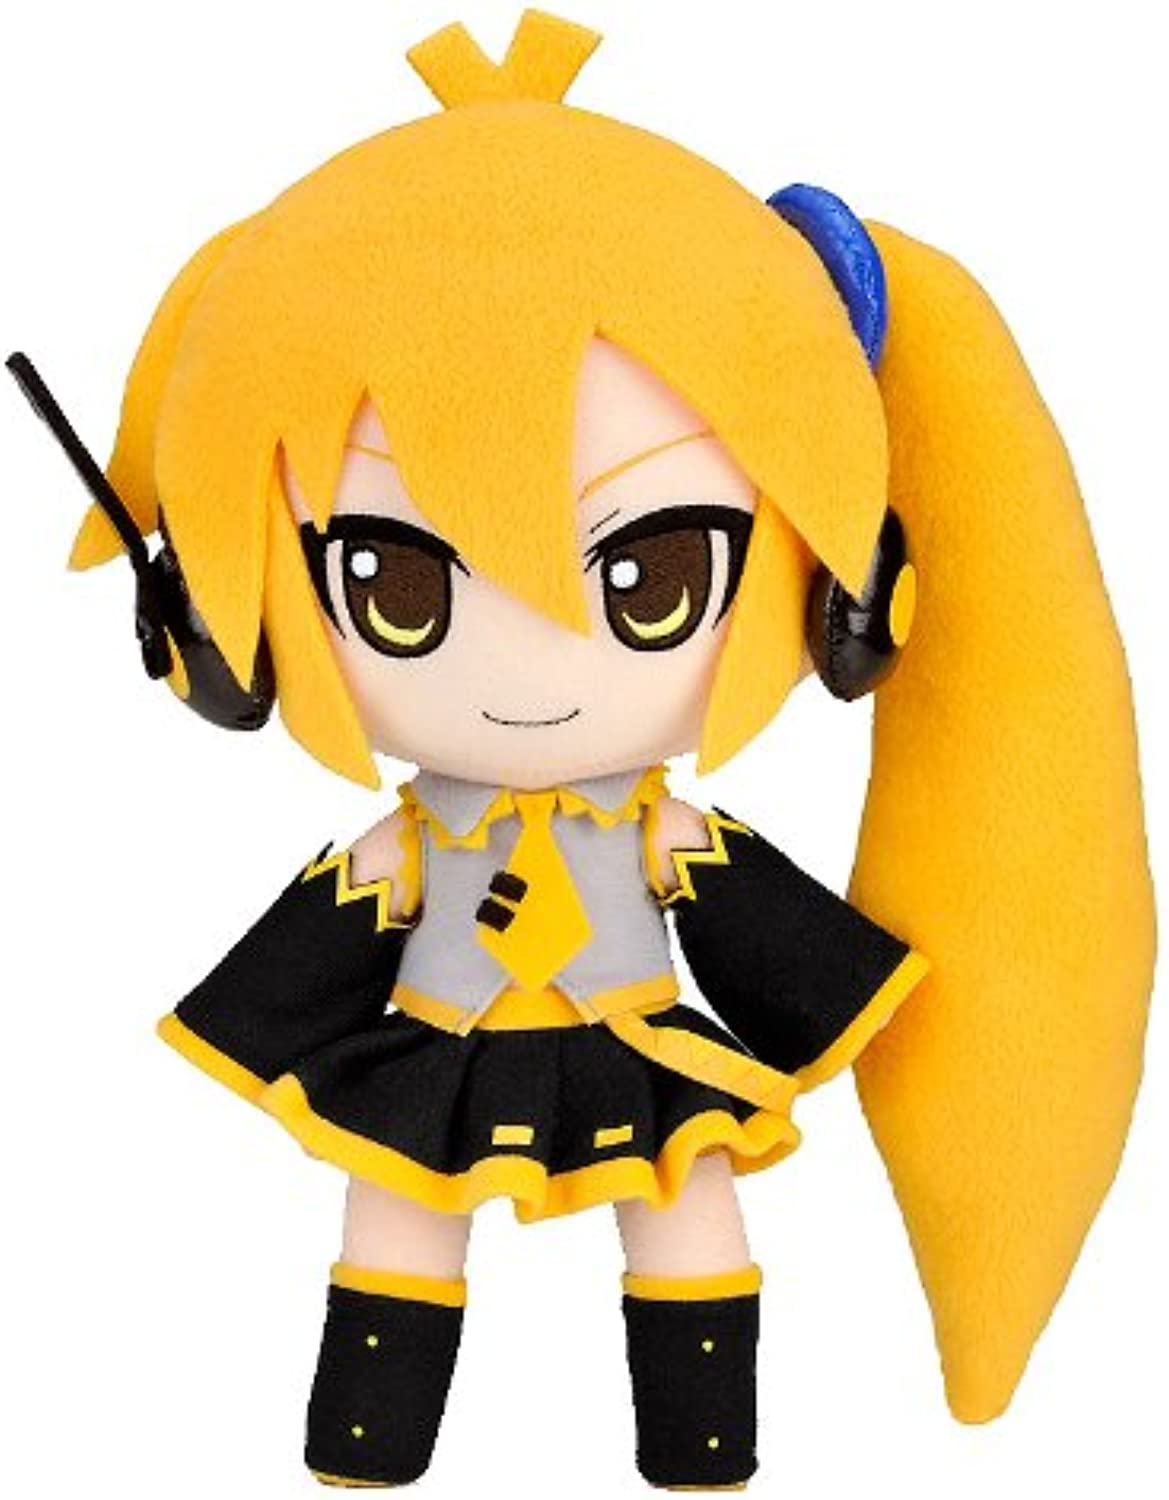 NendGoldid Plus Soft-toy Series 48 - VOCALOID [Neru Akita]